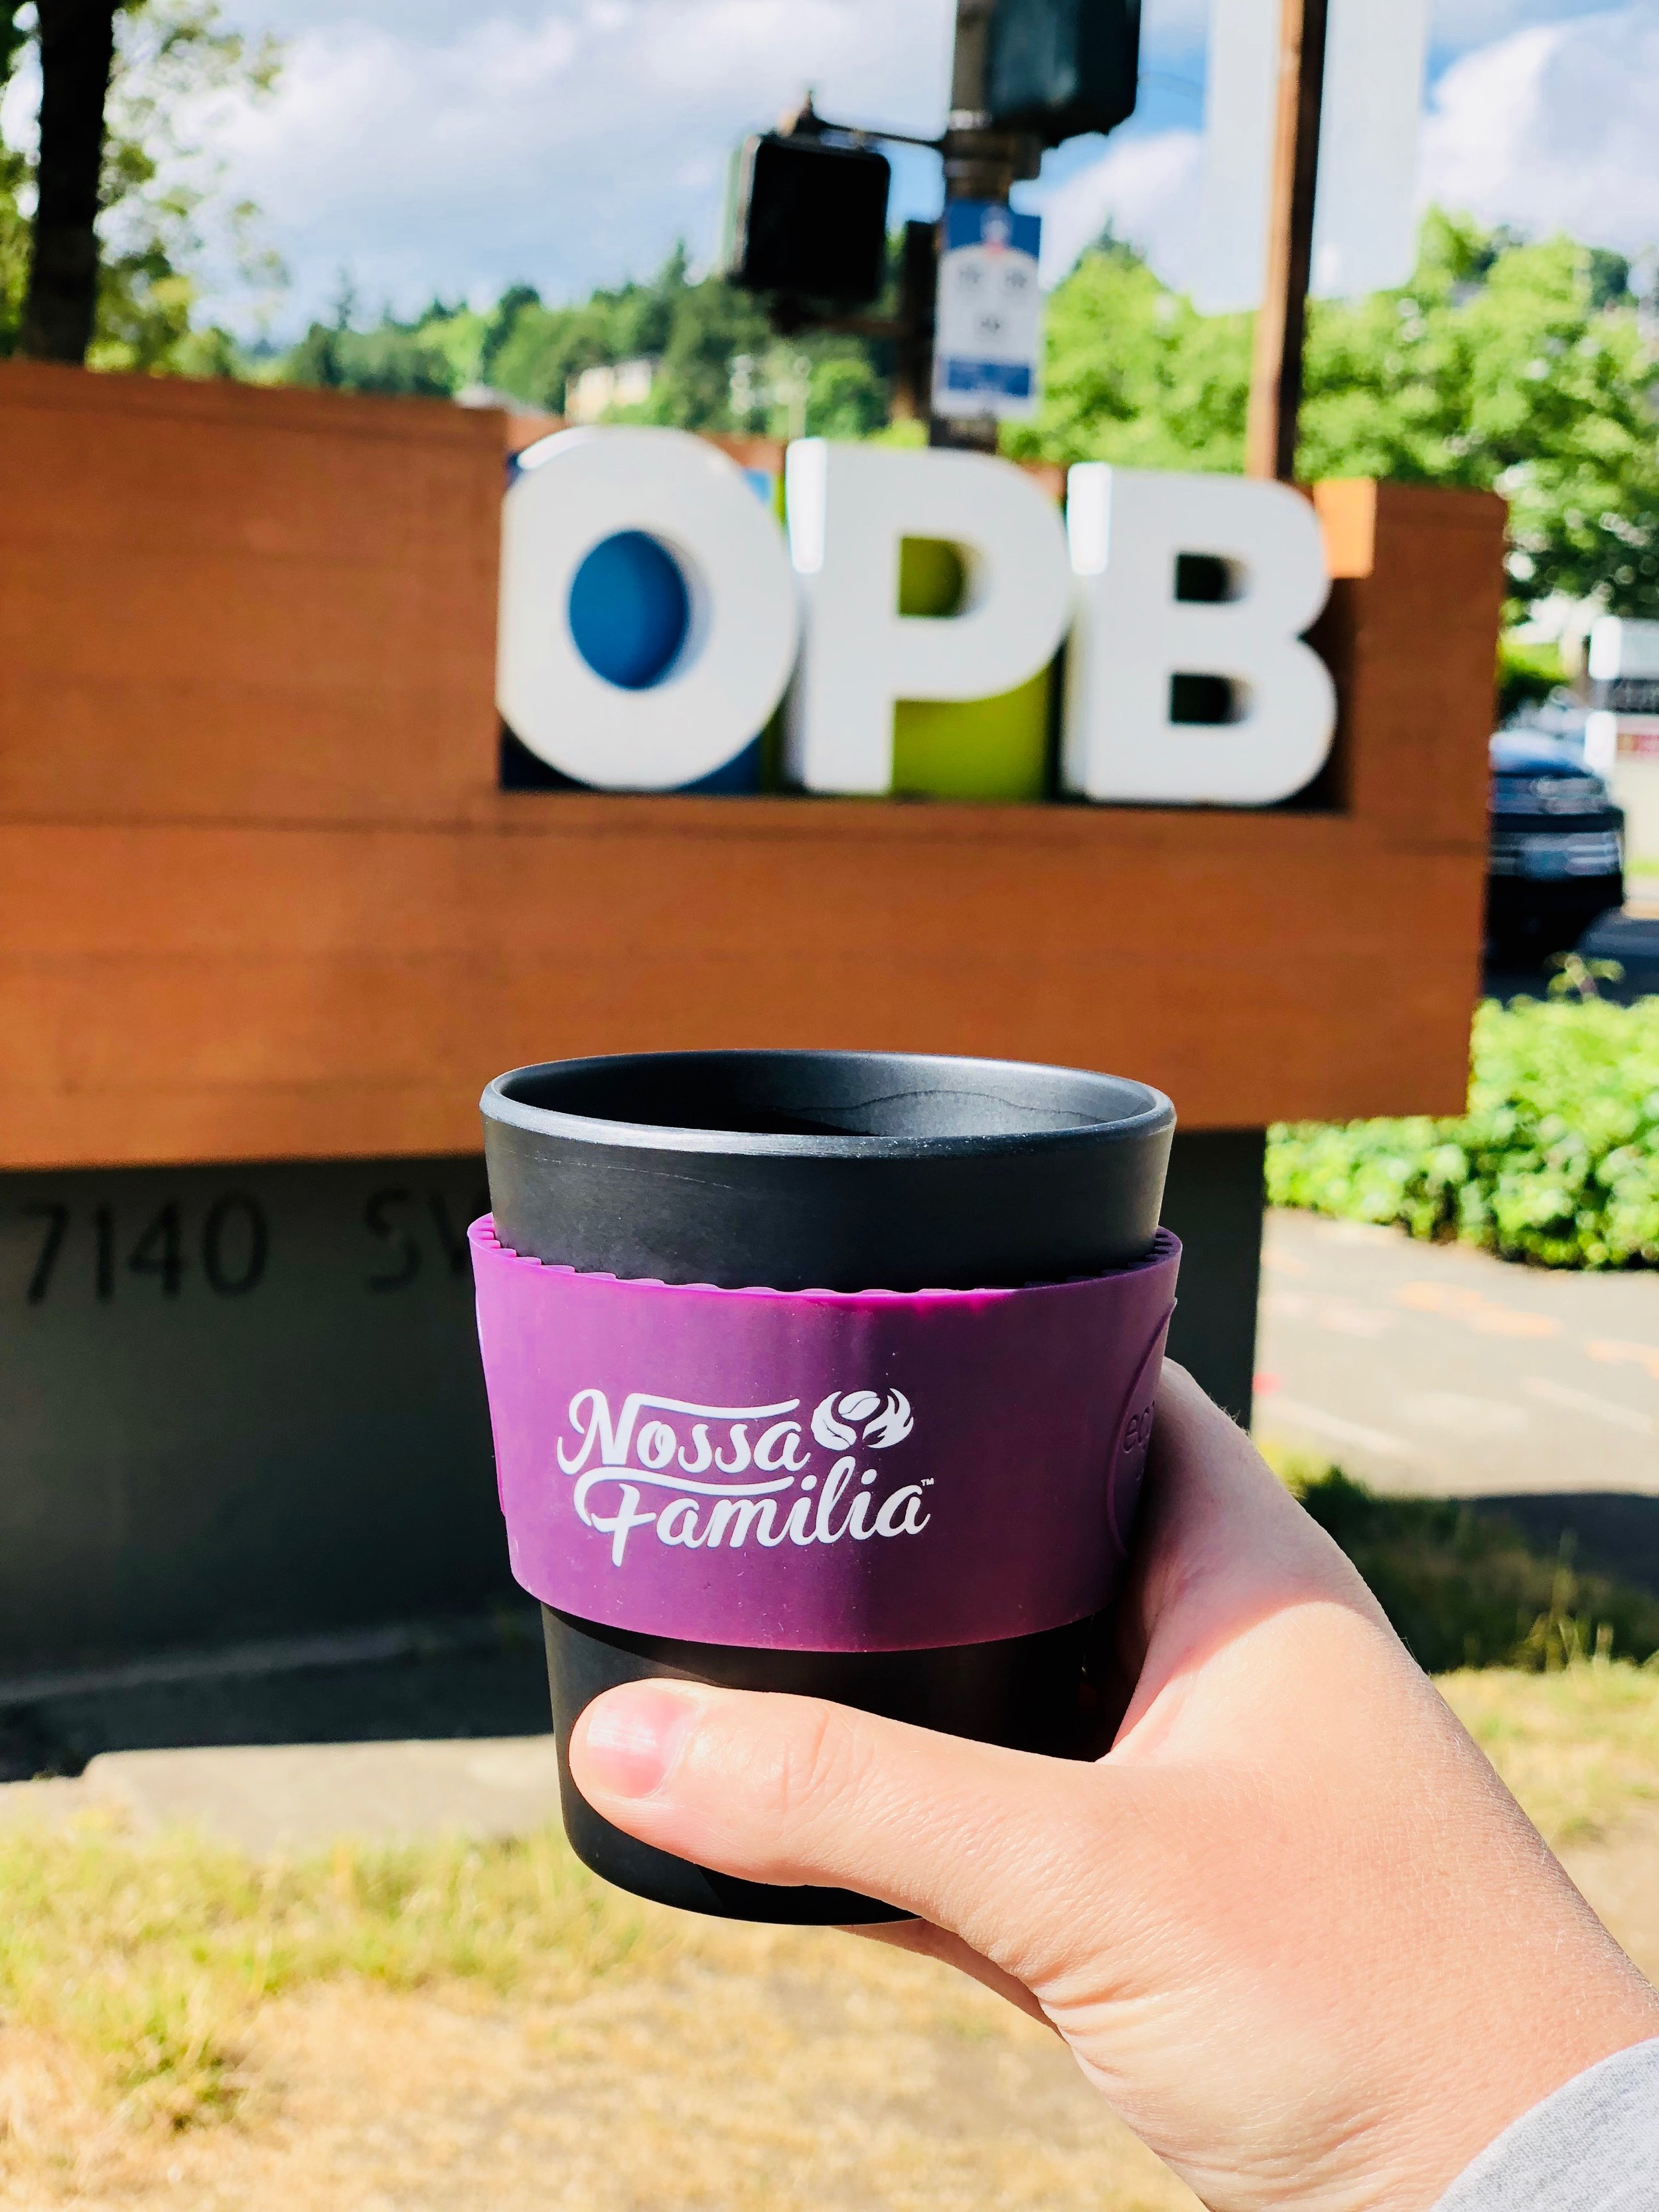 nossa-familia-coffee-reusable-cup-opb.JPG